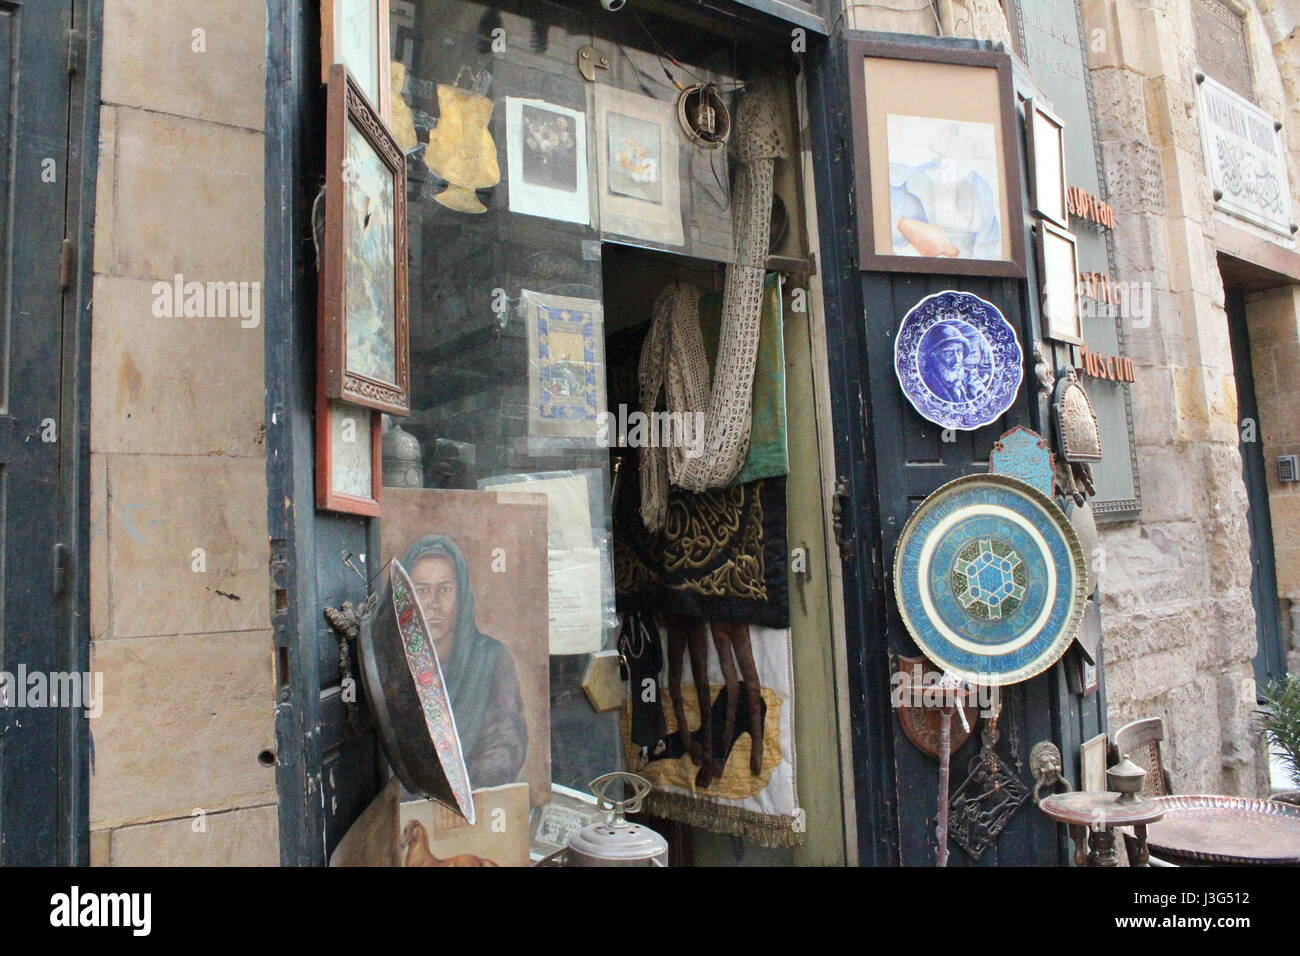 antiques shop at old cairo egypt EL Moez streeet - Stock Image